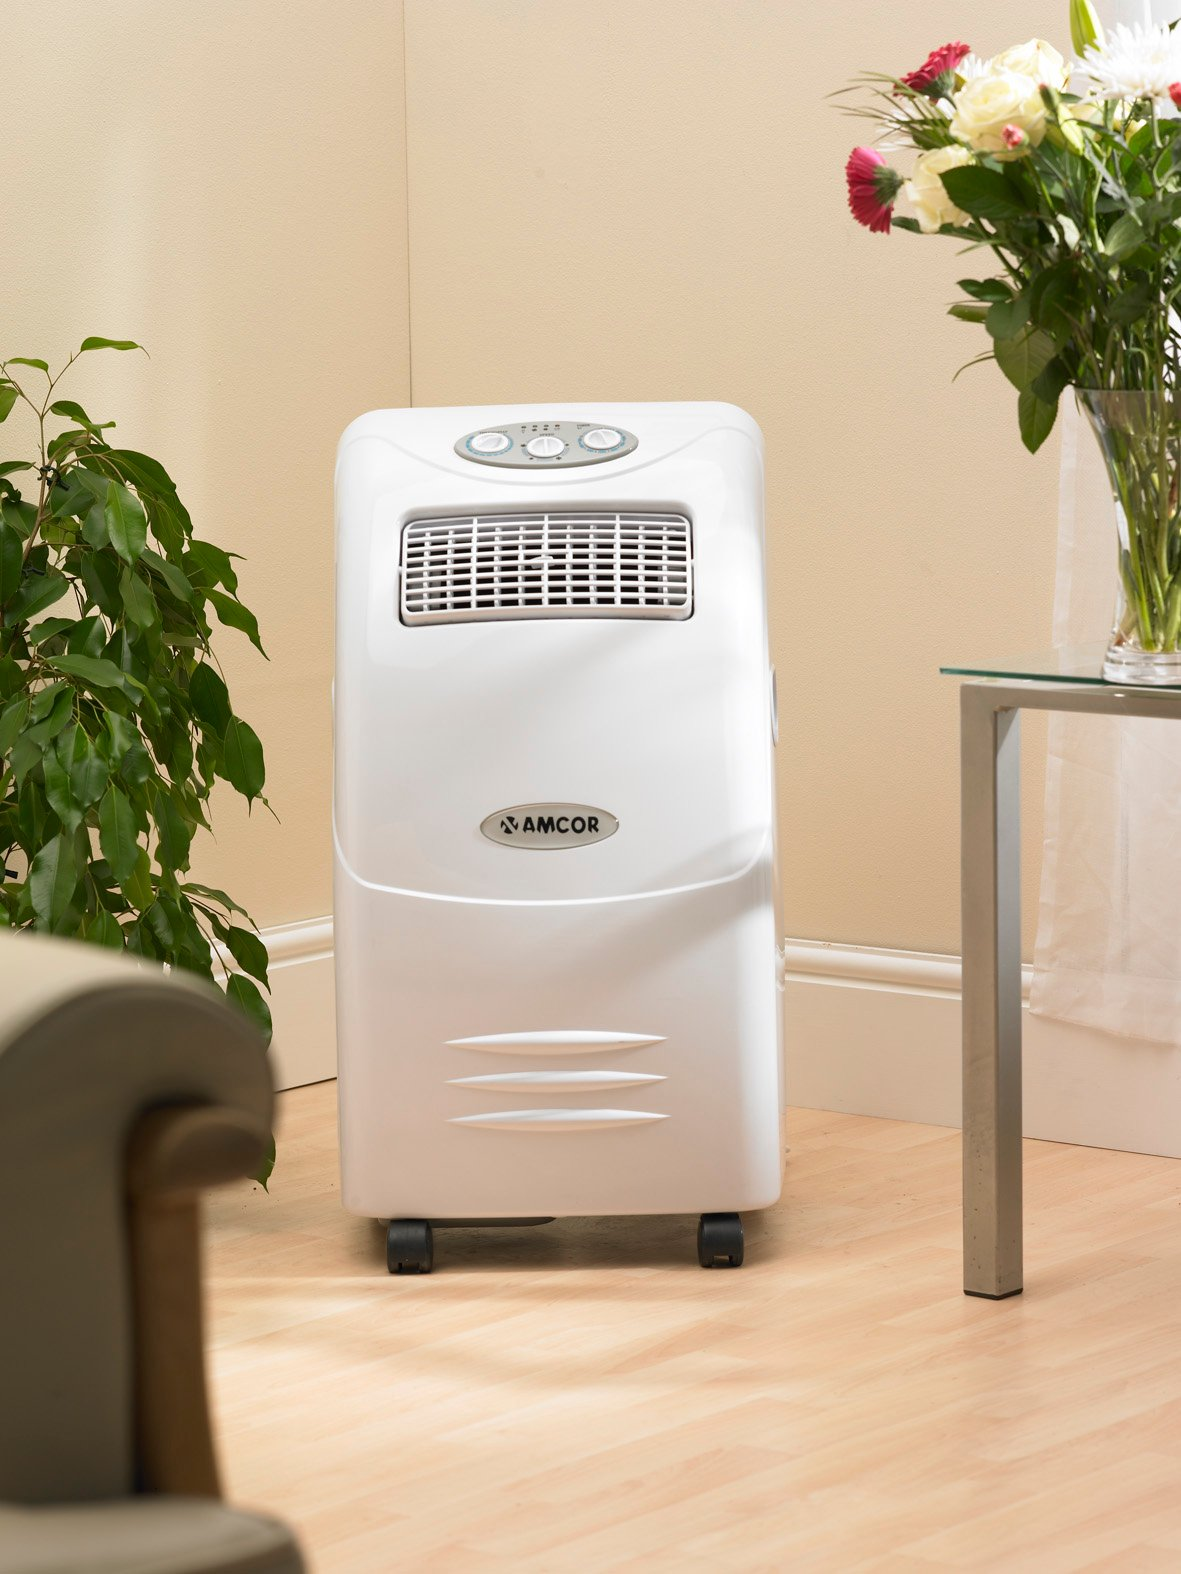 Portable air conditioning units portable air conditioning units bedroom - Bedroom air conditioner ...